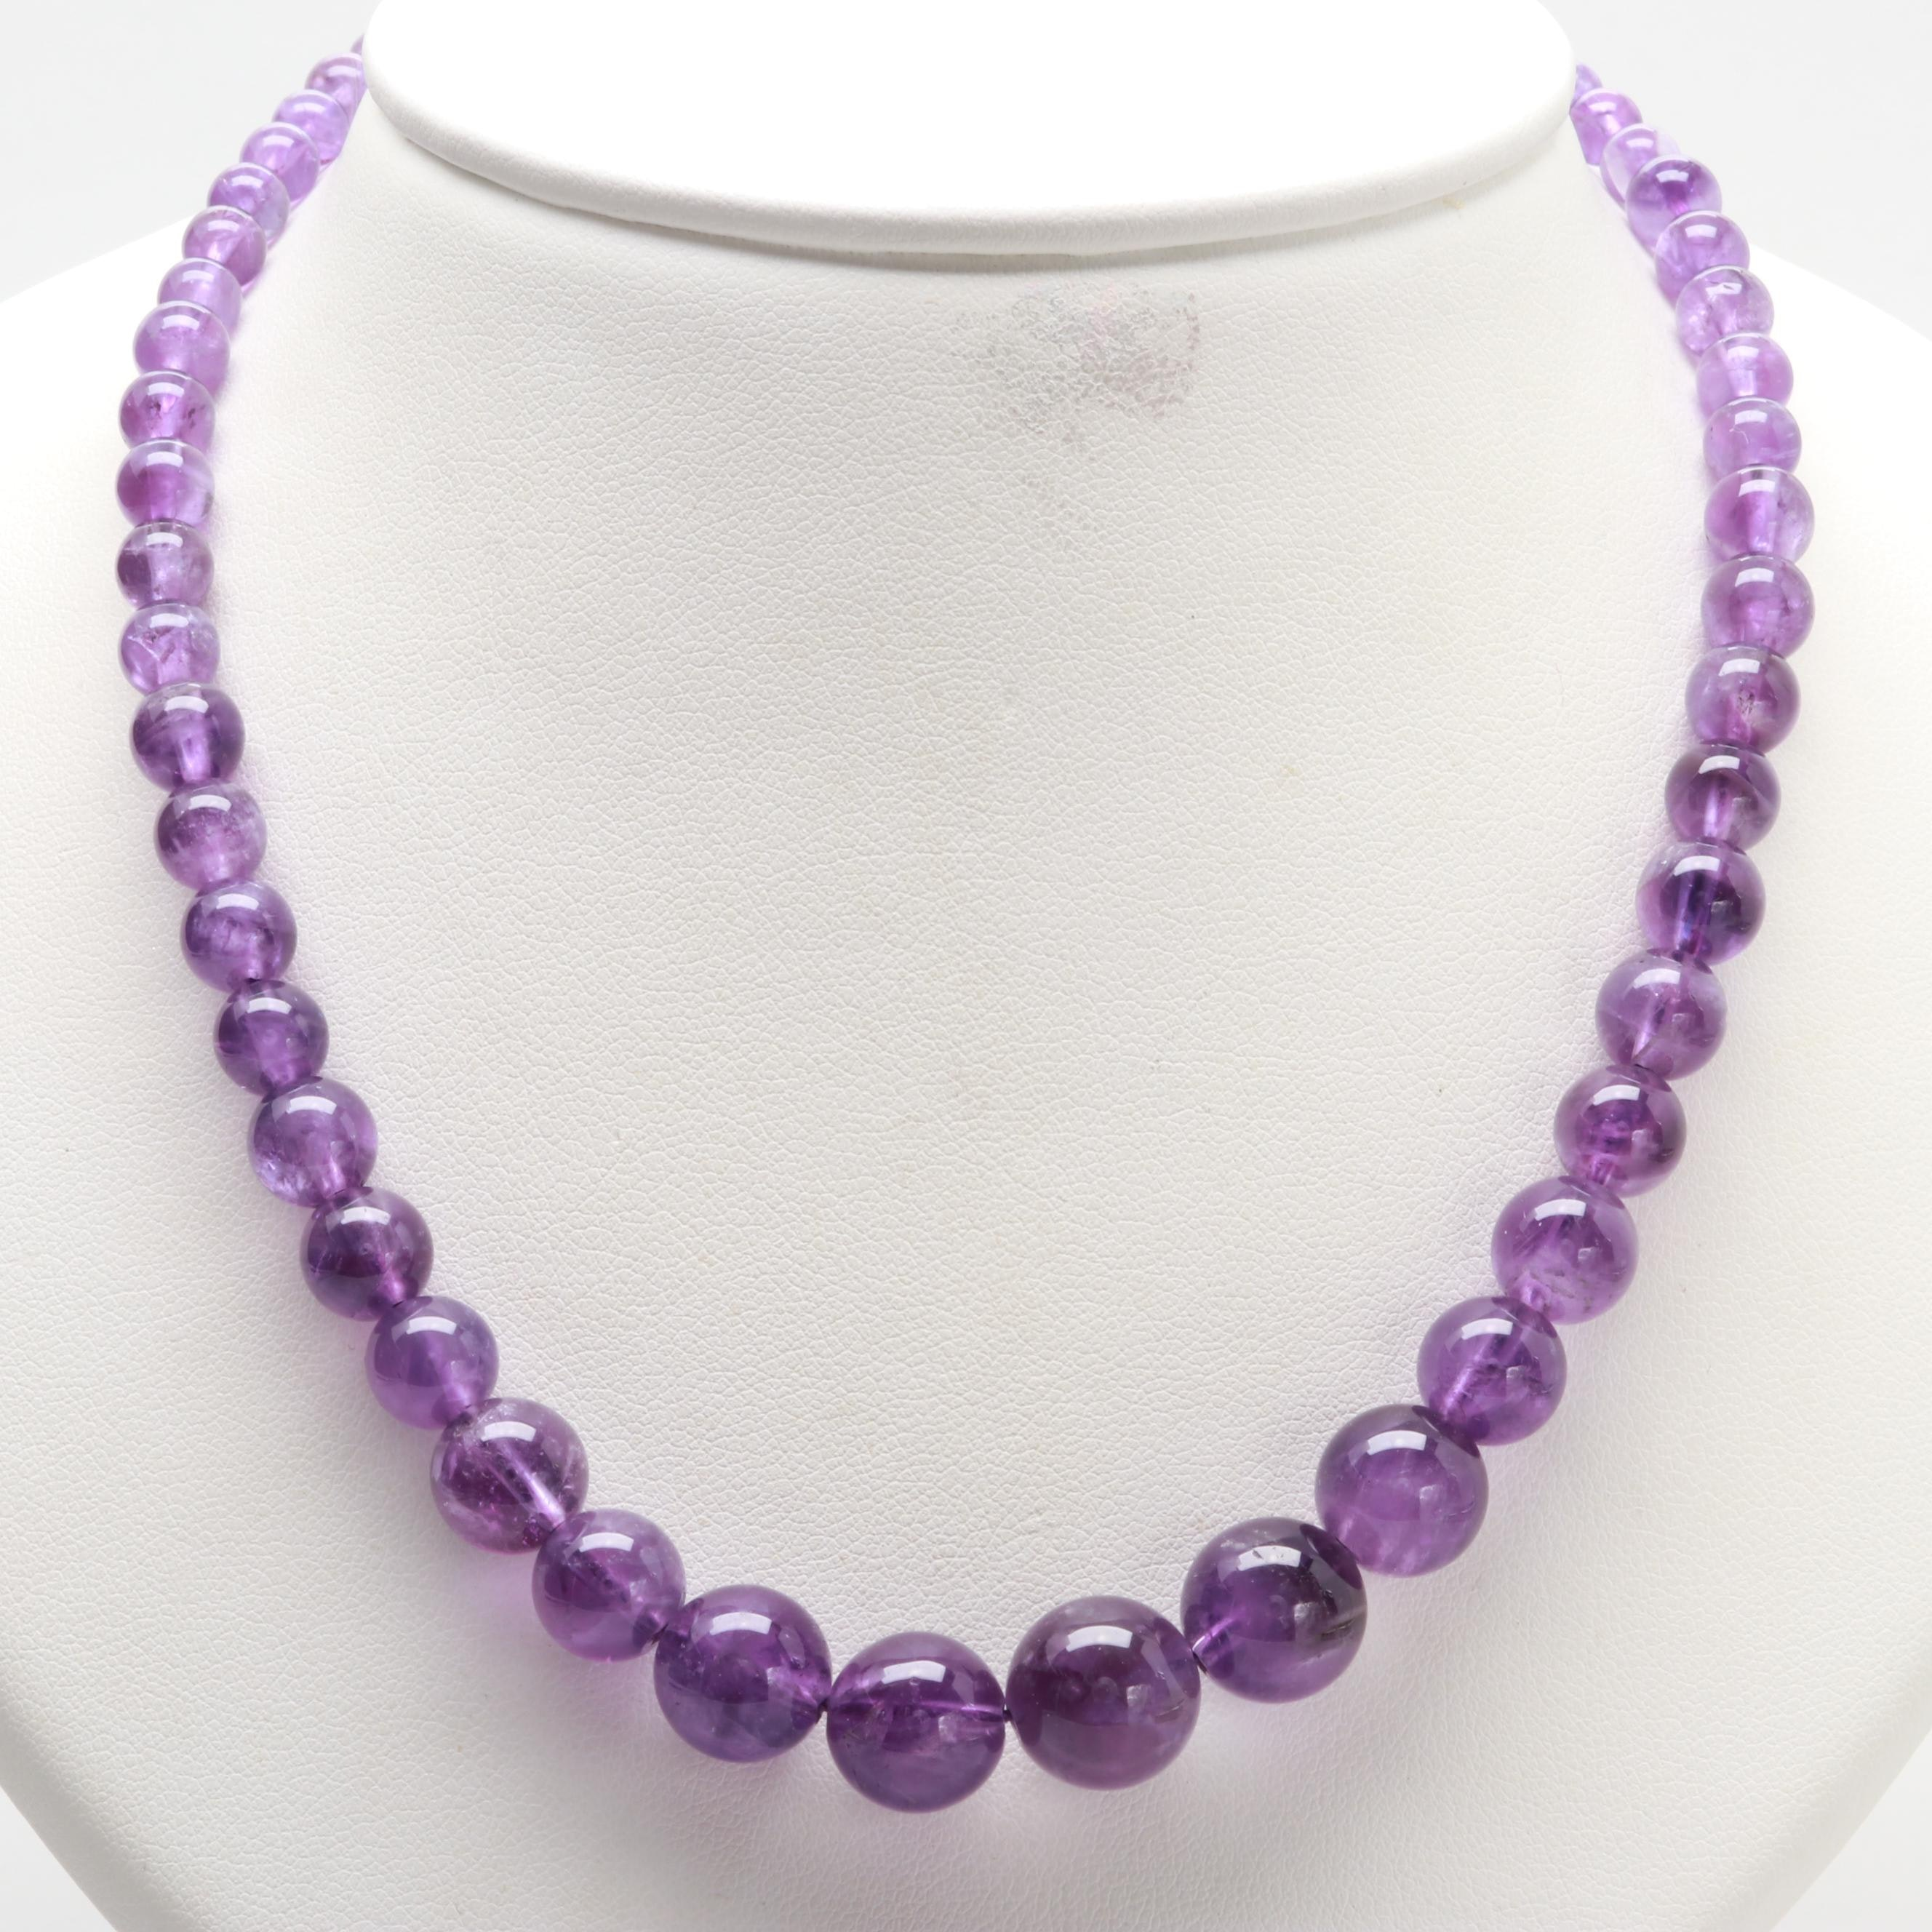 Silver Tone Graduated Amethyst Beaded Necklace